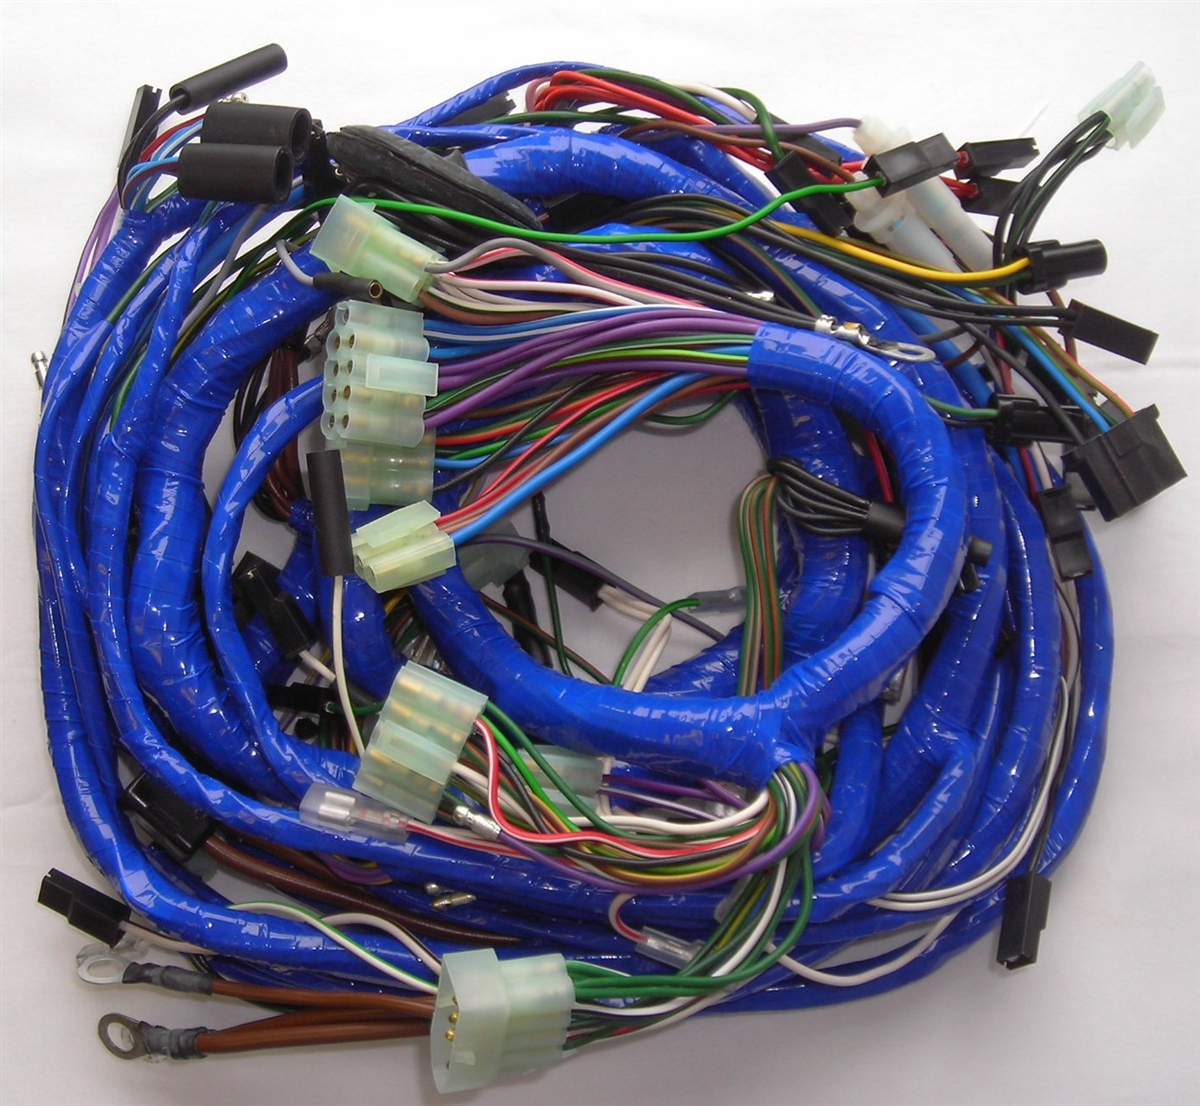 medium resolution of 1978 mgb wiring harness wiring diagram mega1978 mgb wiring harness